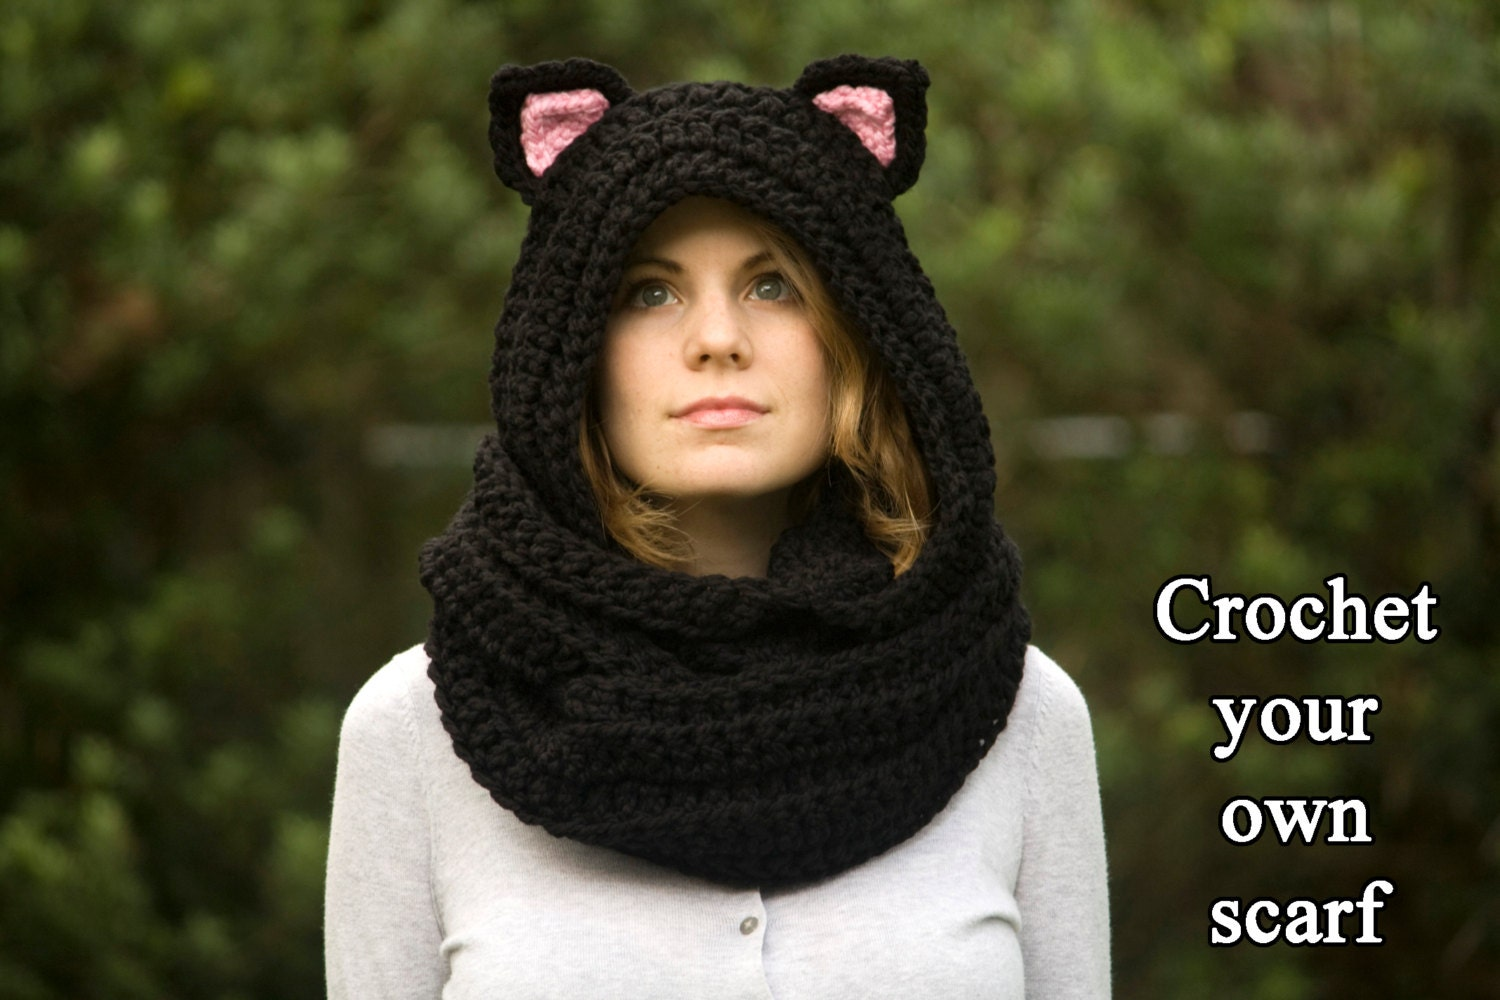 Crochet Pattern Hooded Scarf With Ears : CROCHET PATTERN Cat Scarf, Scoodie, Hooded Scarf with Cat ...